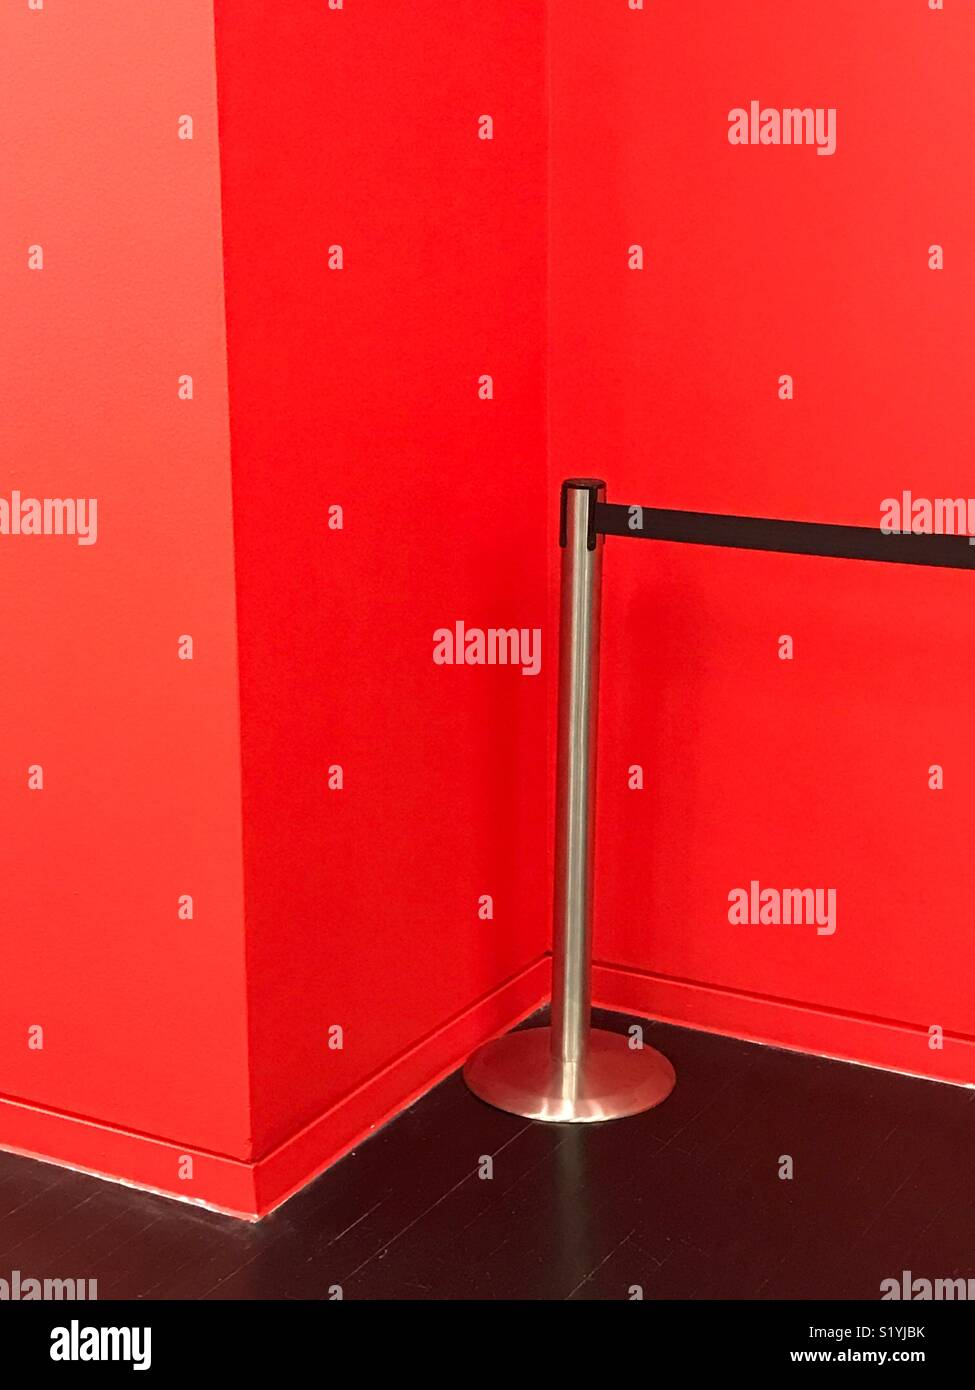 A barrier and a red wall - Stock Image